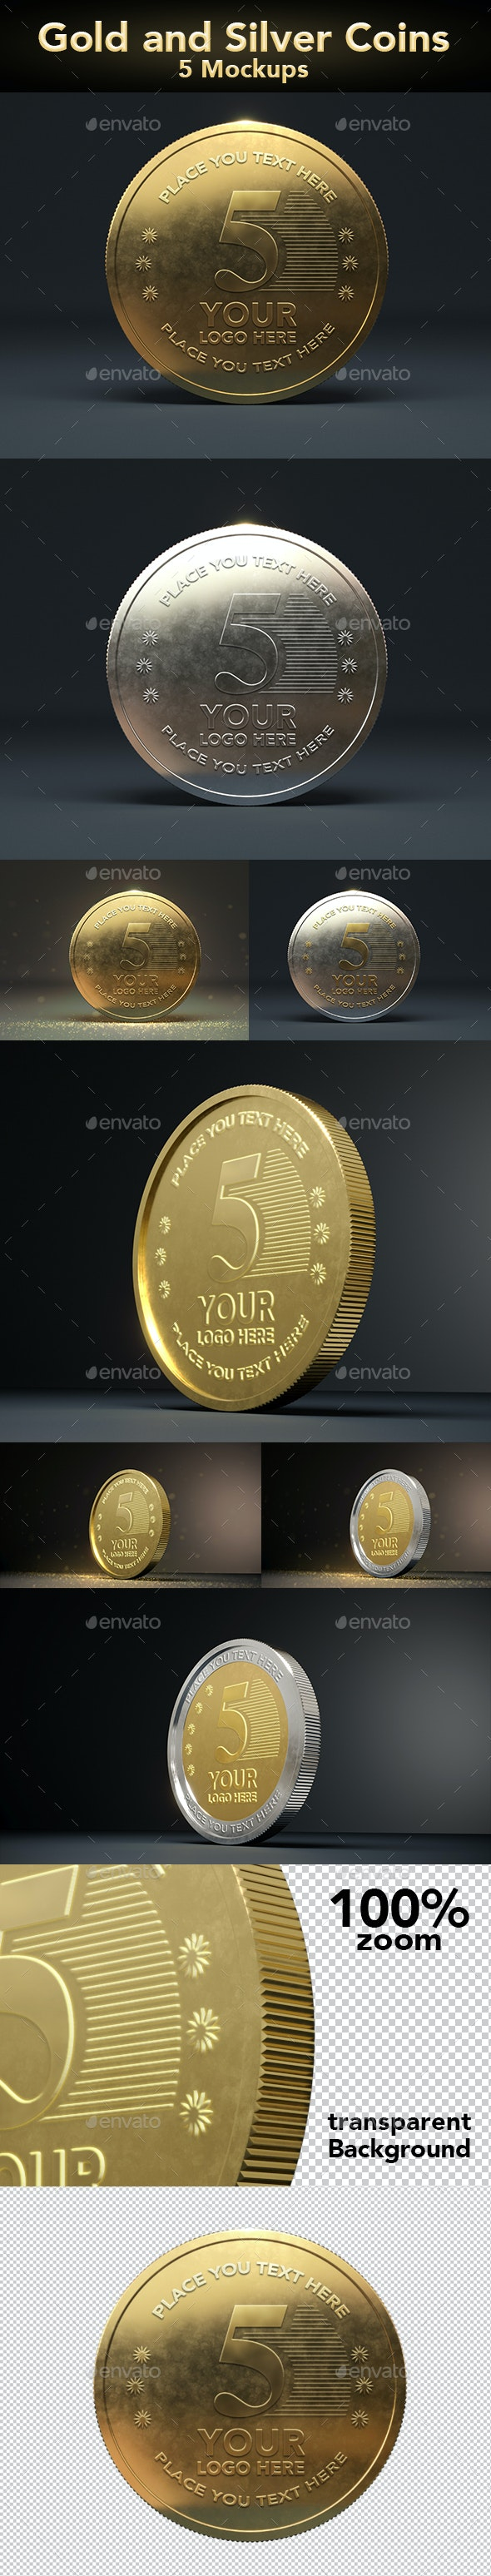 Gold Coin Mockups - Product Mock-Ups Graphics